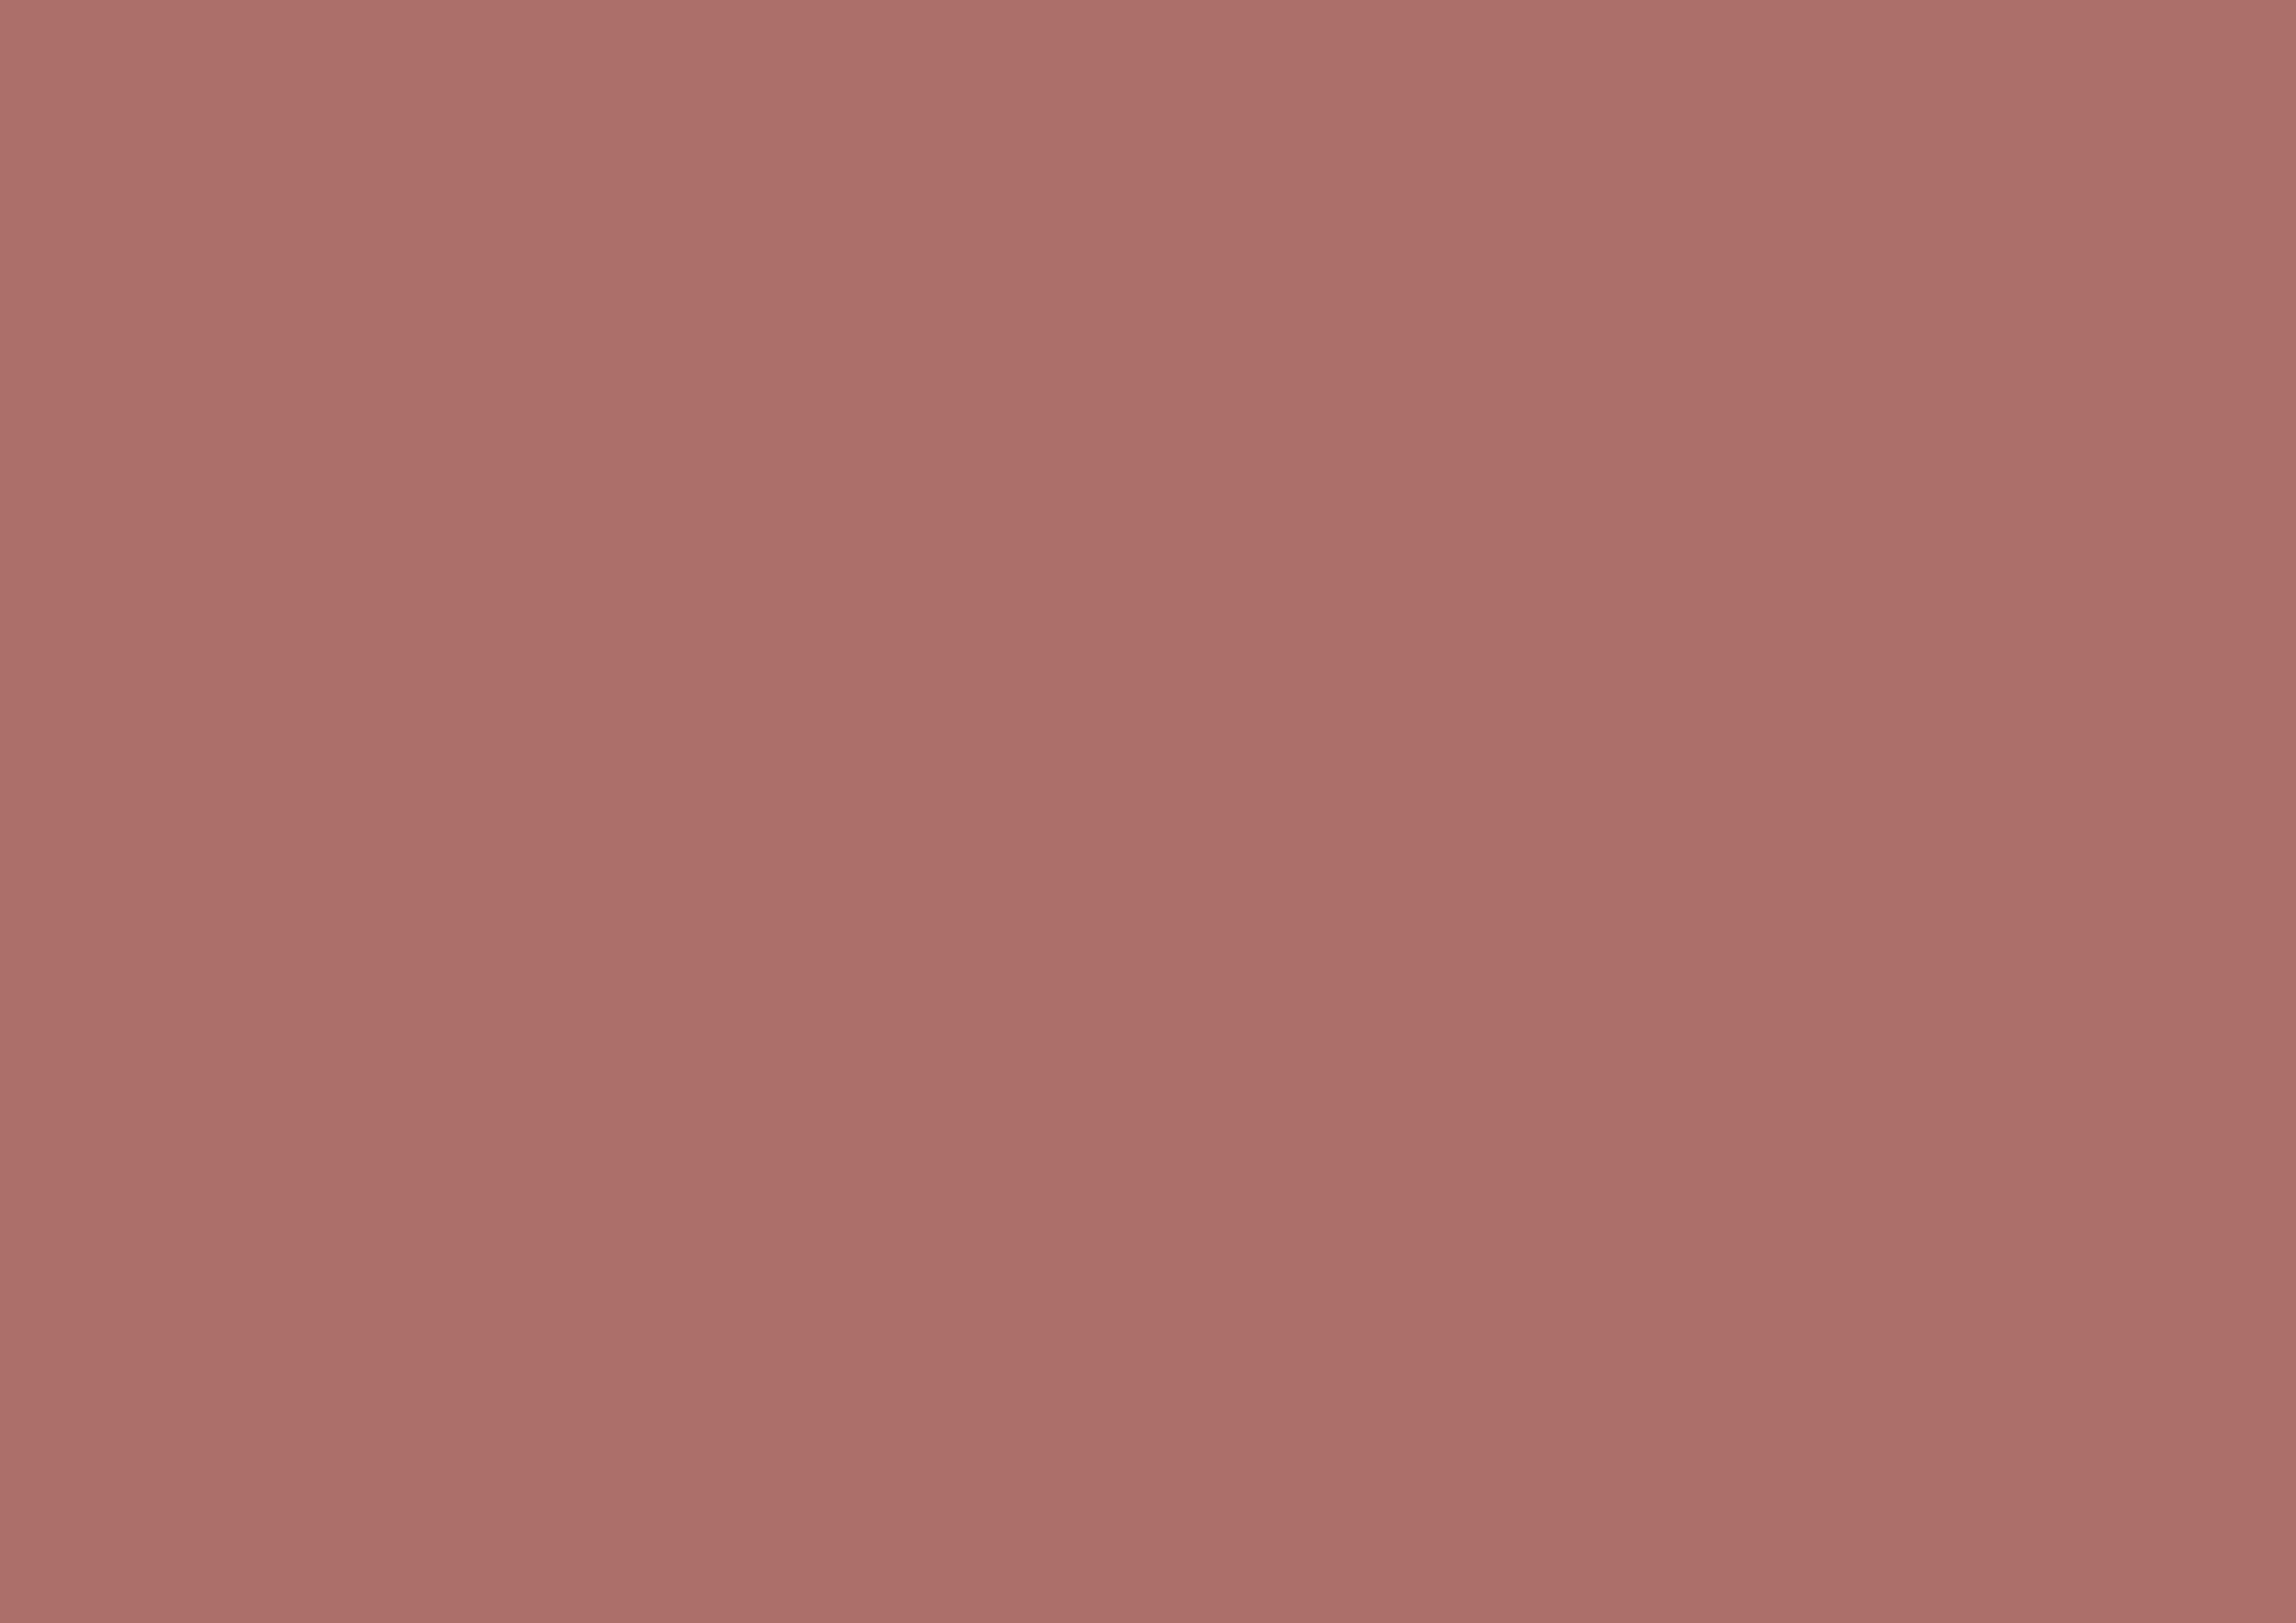 3508x2480 Copper Penny Solid Color Background